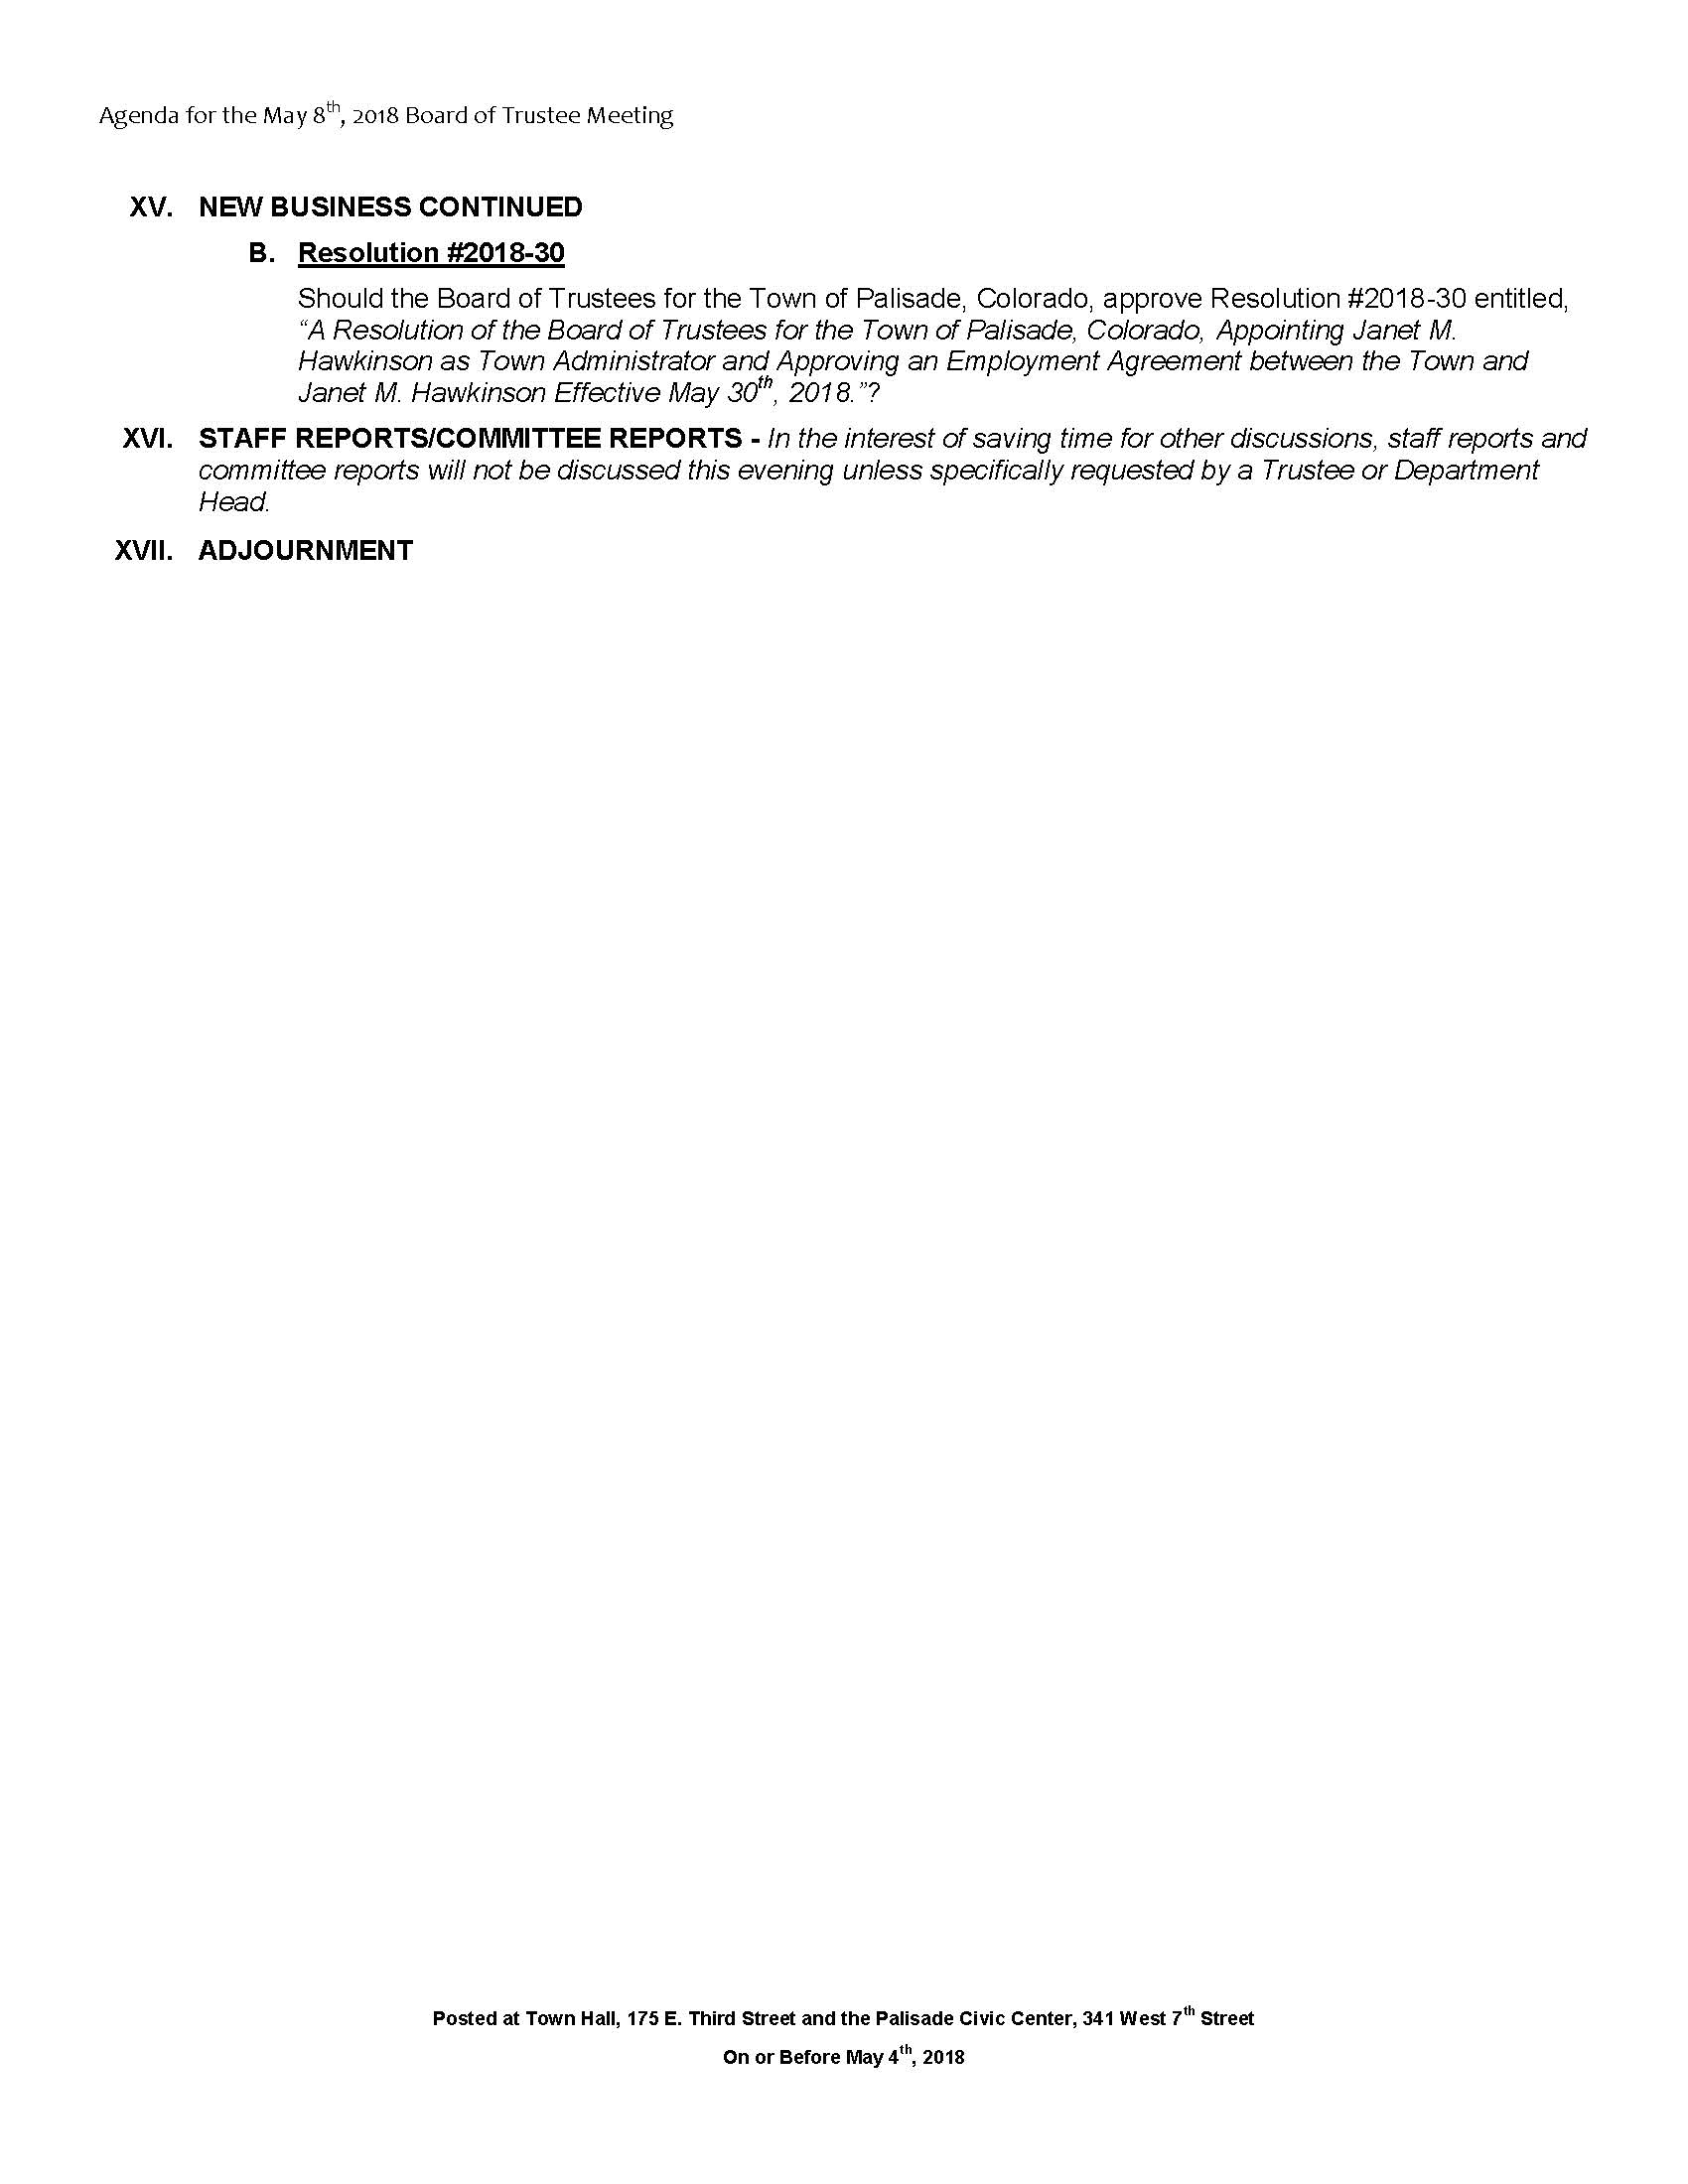 May 8th 2018 Board Meeting Agenda Page 3